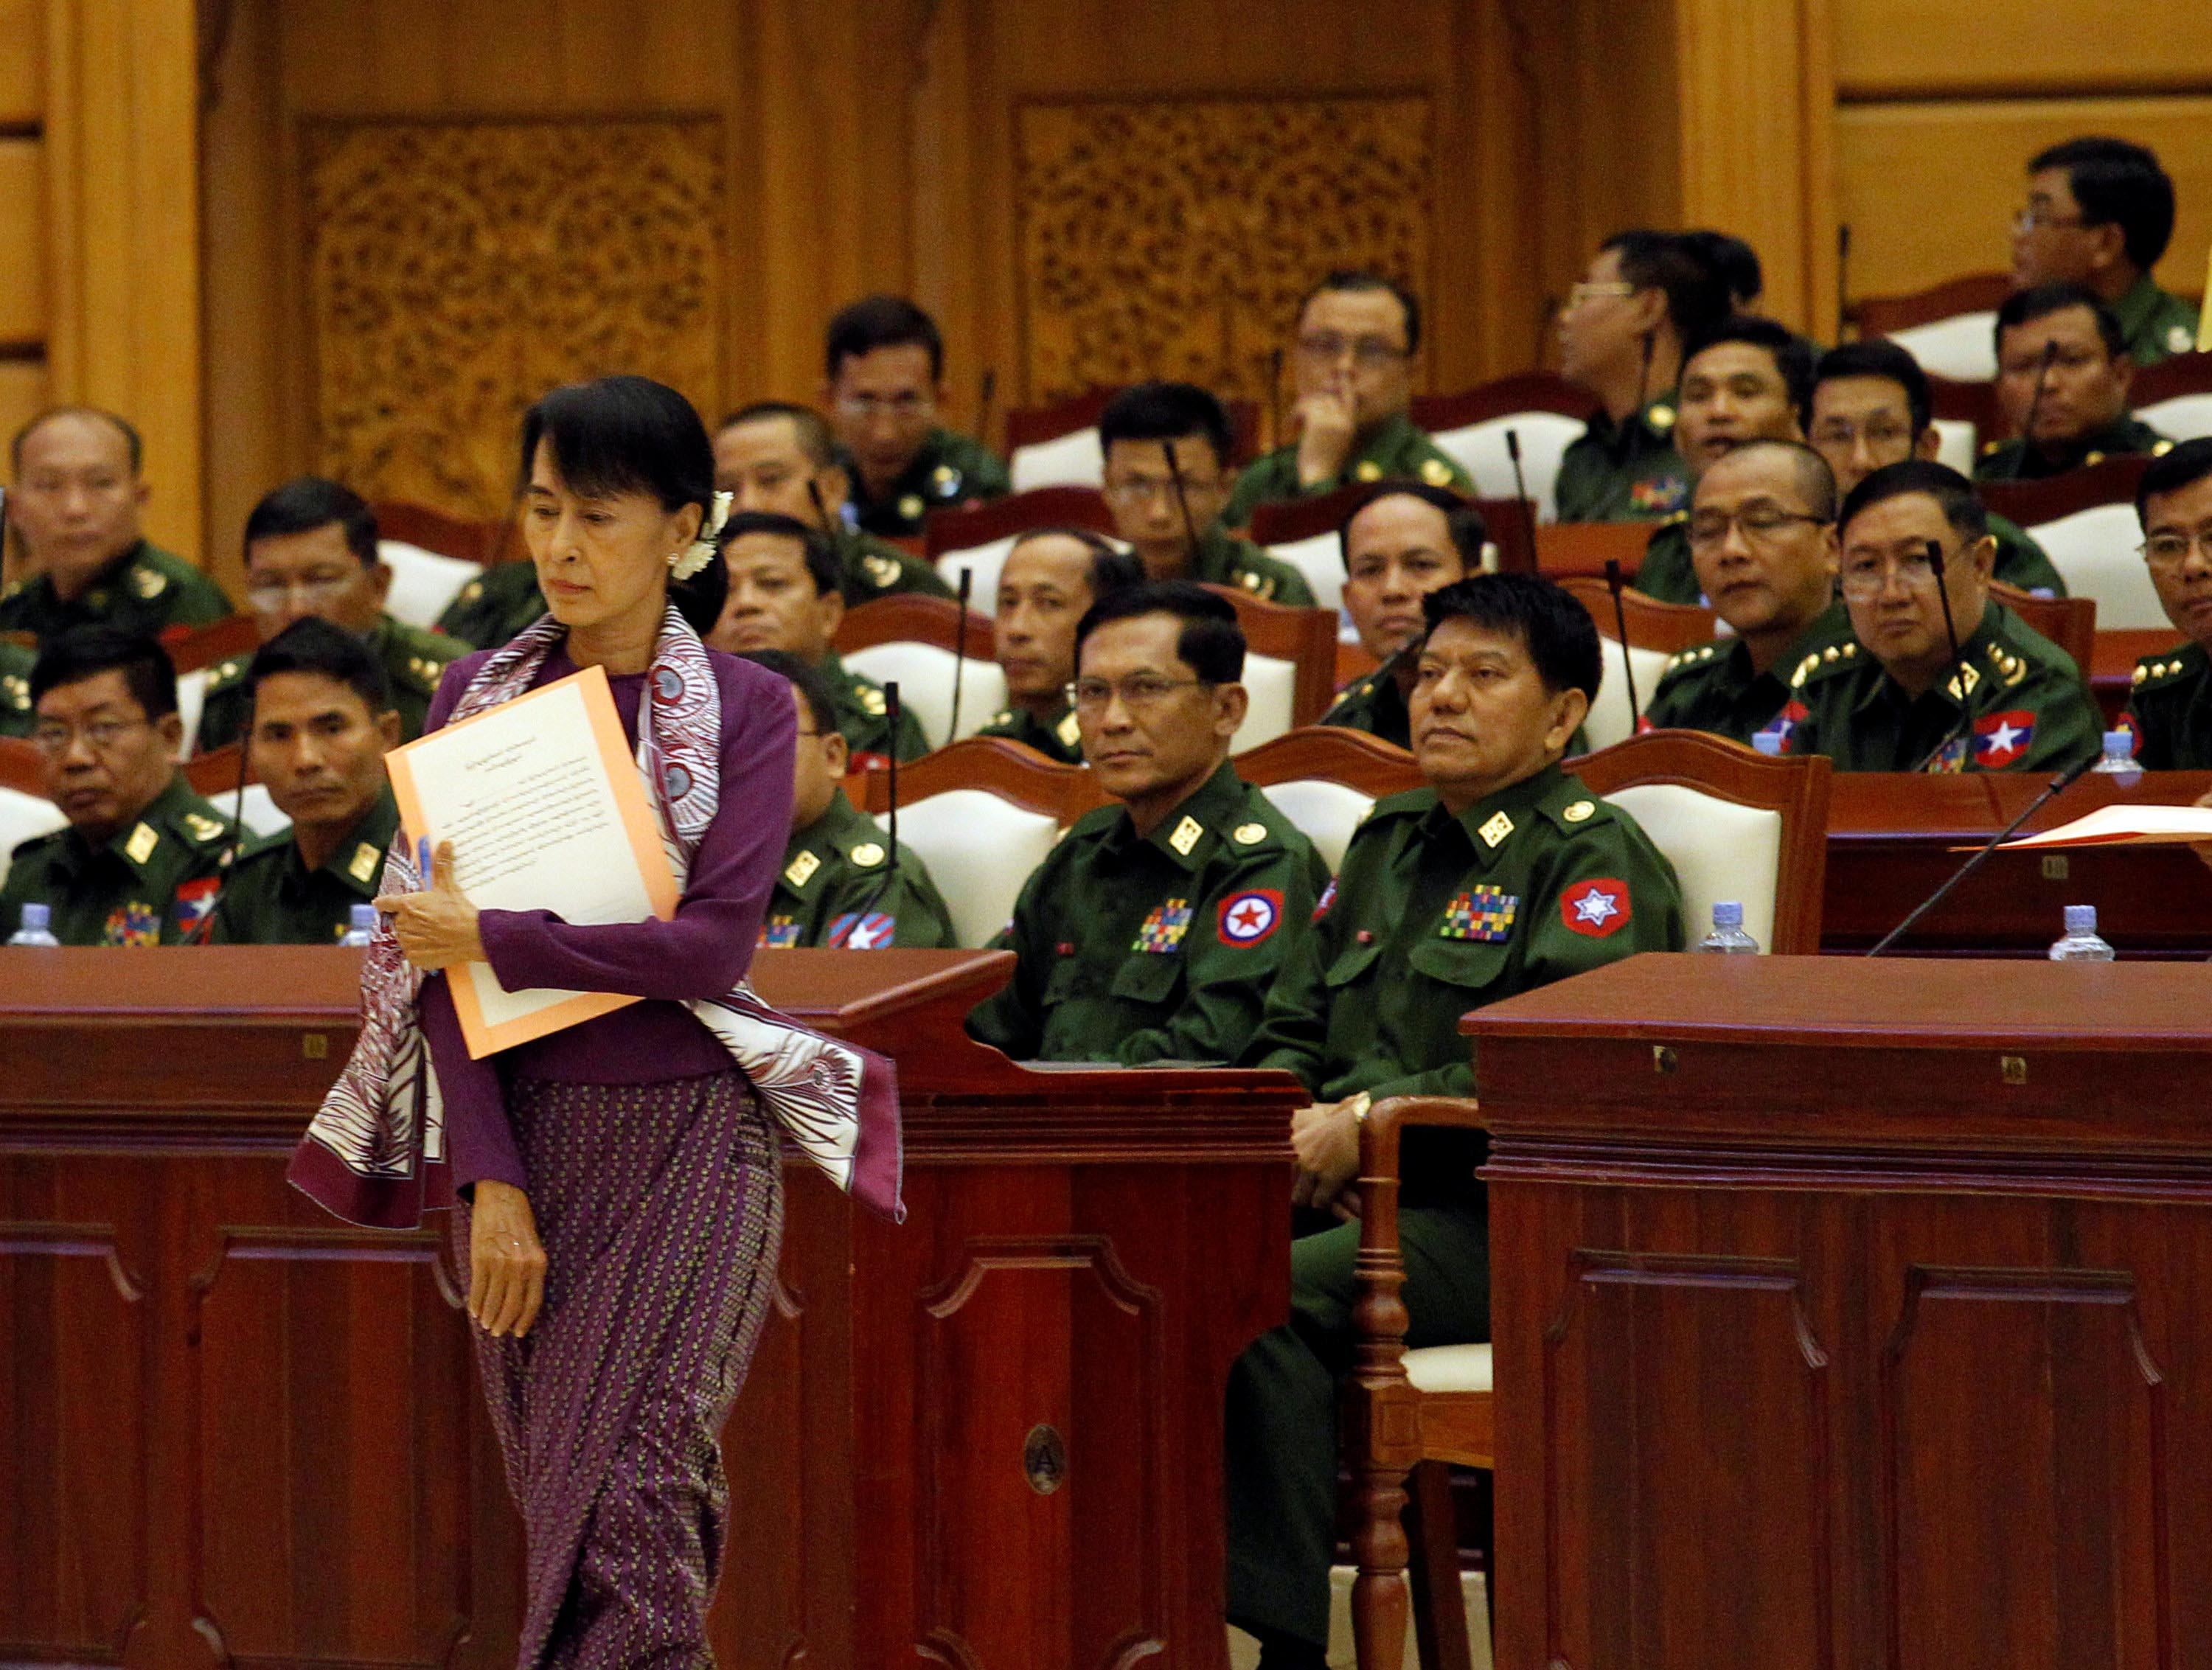 Pro-democracy leader Aung San Suu Kyi walks to take an oath at the lower house of parliament in Naypyitaw, on May 2, 2012. Photo: AP